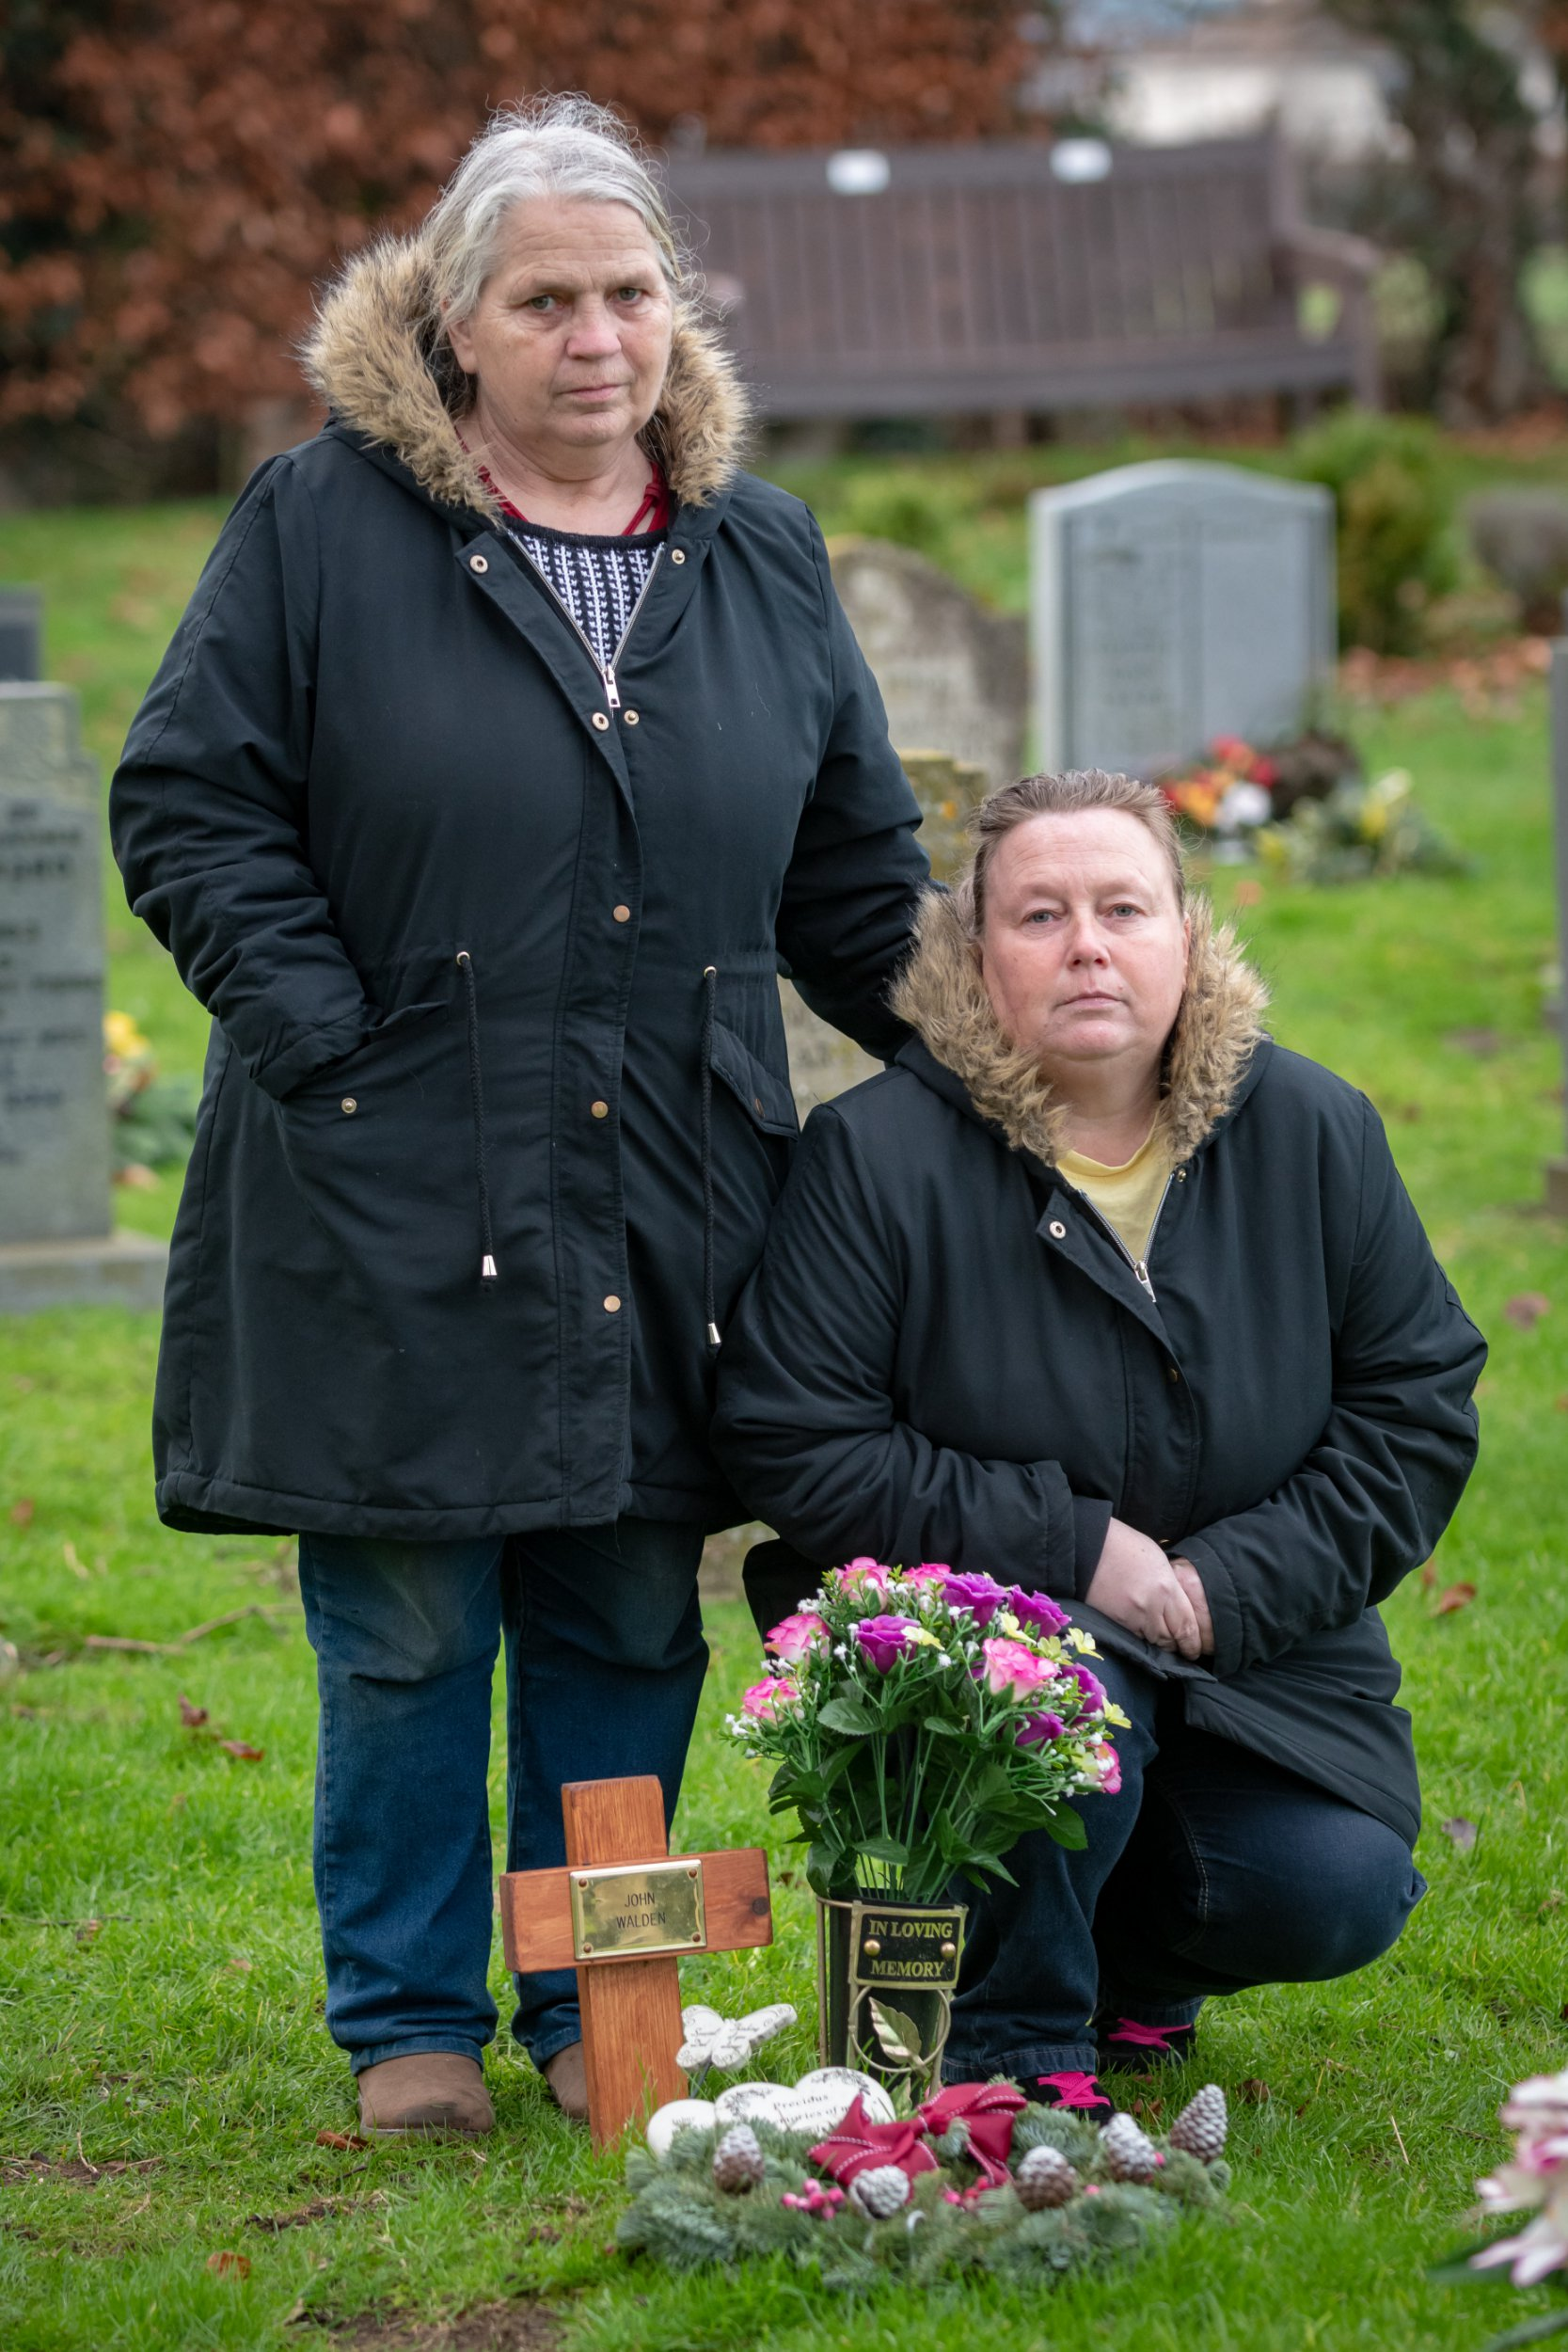 """(L-R) Pauline Walden, 64, with her daughter Caroline Walden,45, by the grave of Pauline???s husband John Walden at St Mary???s Church Syderstone Norfolk. See SWNS story SWSYgrave..A grieving family has been told they can't put the words 'dad' or 'grandad' on their loves ones grave -- because it's against church policy.A grieving daughter claims that a suggestion by a local reverend to use """"father"""" and """"grandfather"""" on their grave is an insult to their family.Caroline Walden, whose dad's passed away in January aged 65 from COPD want the headstone to read """"loving husband, dad, and grandad"""" at his burial site at St Mary's Church in Syderstone, Norfolk.However, the family claim that the rector rejected their request because of """"policy"""" and said that they should call themselves """"grandfather"""" and """"father"""" instead because of local church policy."""